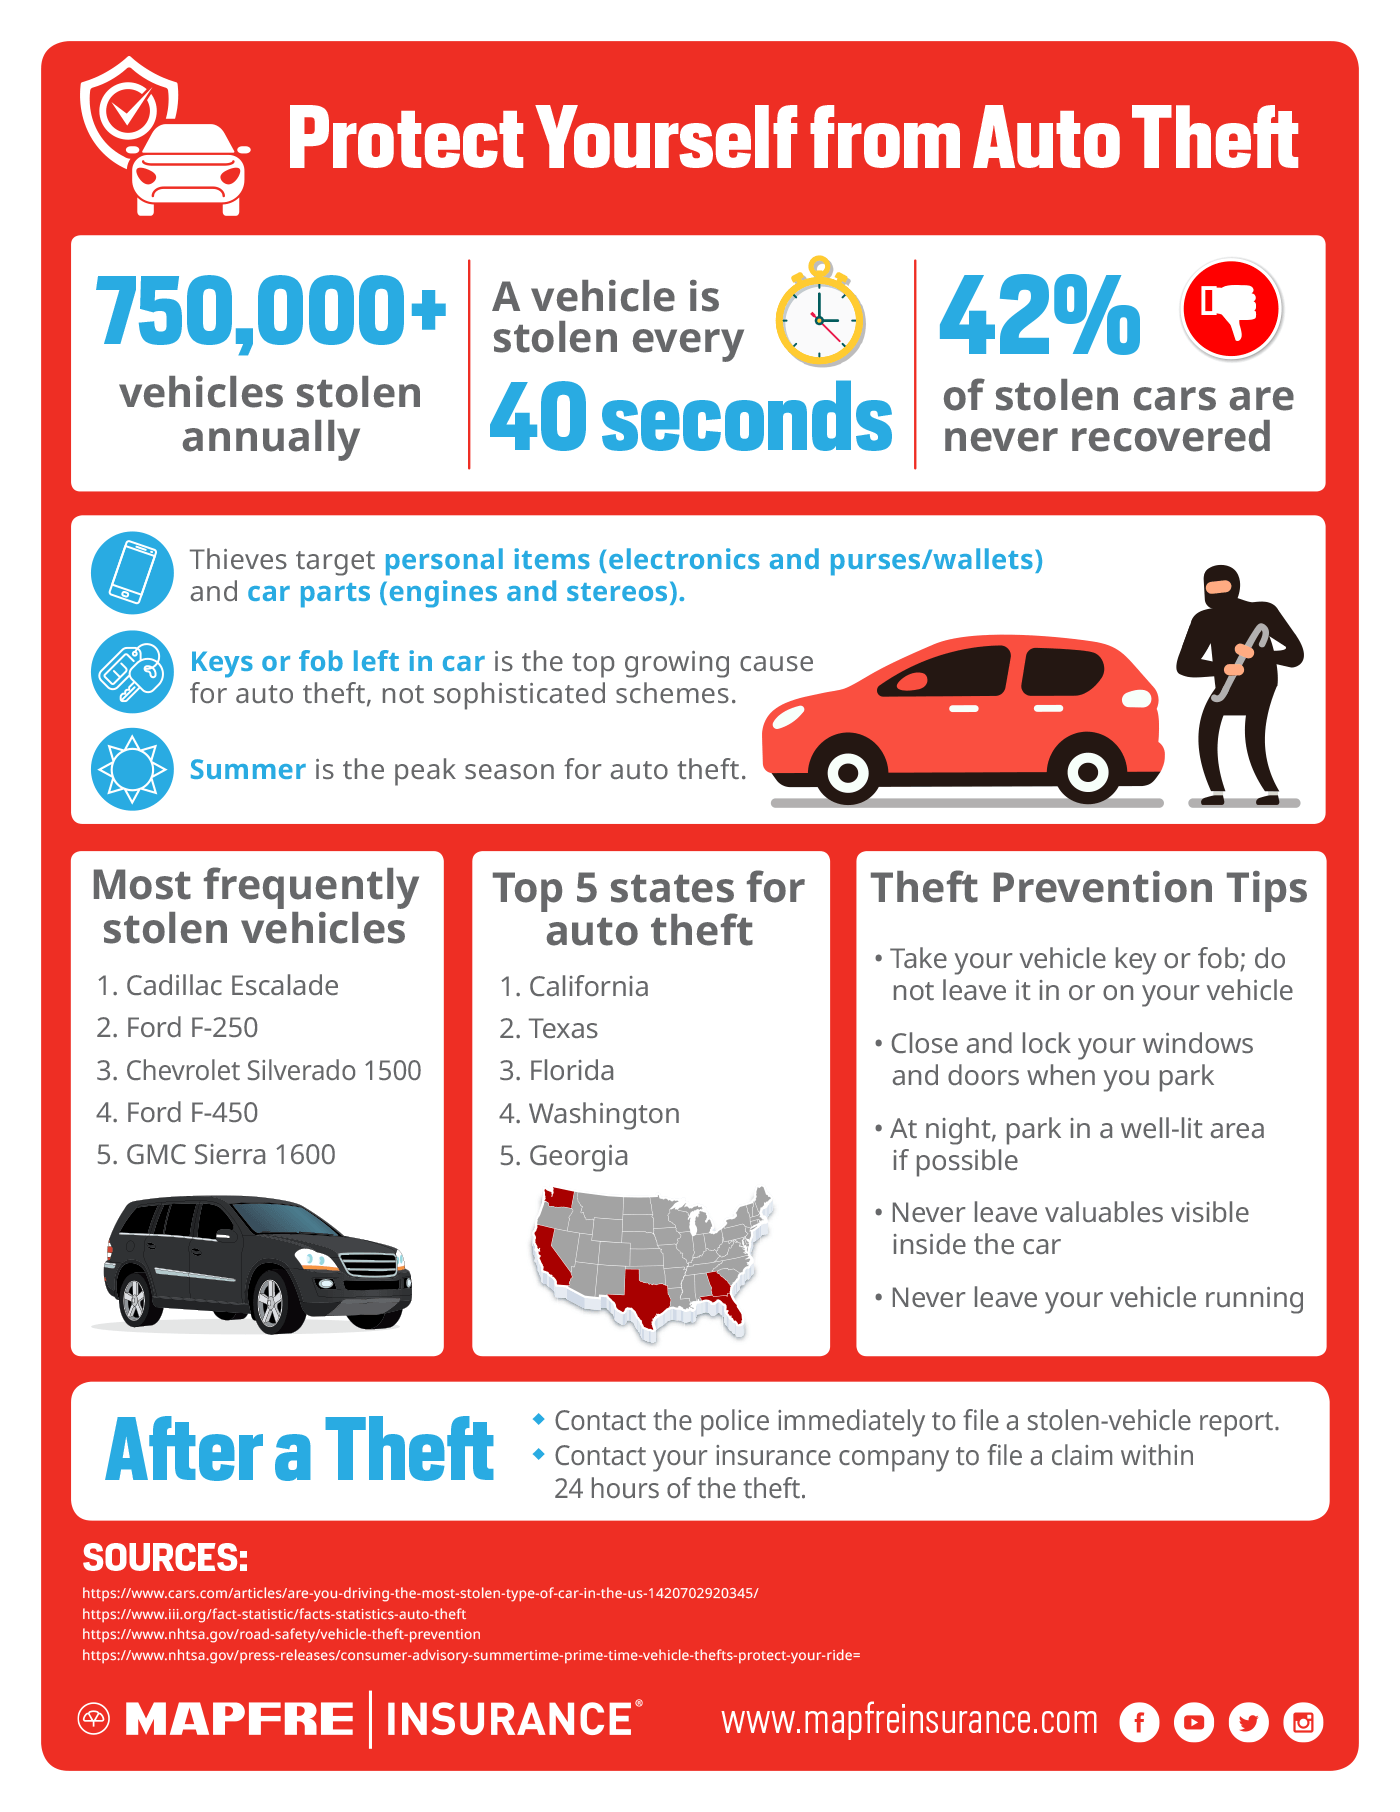 Protect Yourself from Auto Theft   MAPFRE Insurance Blog